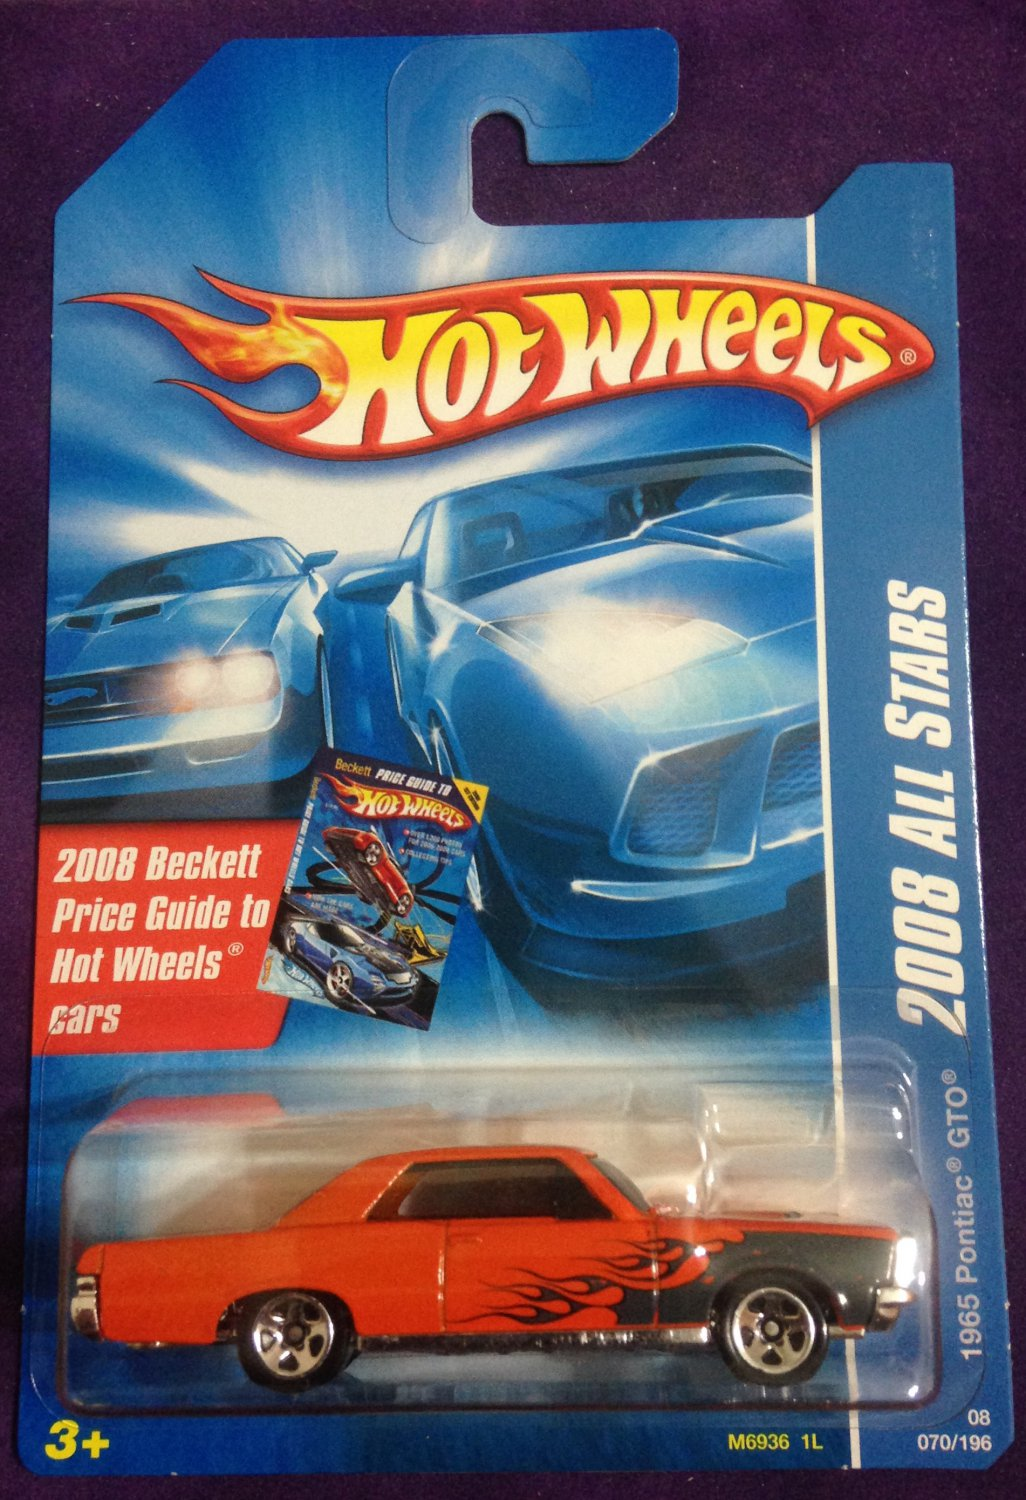 2008 Hot Wheels Beckett Card #70 1965 Pontiac GTO